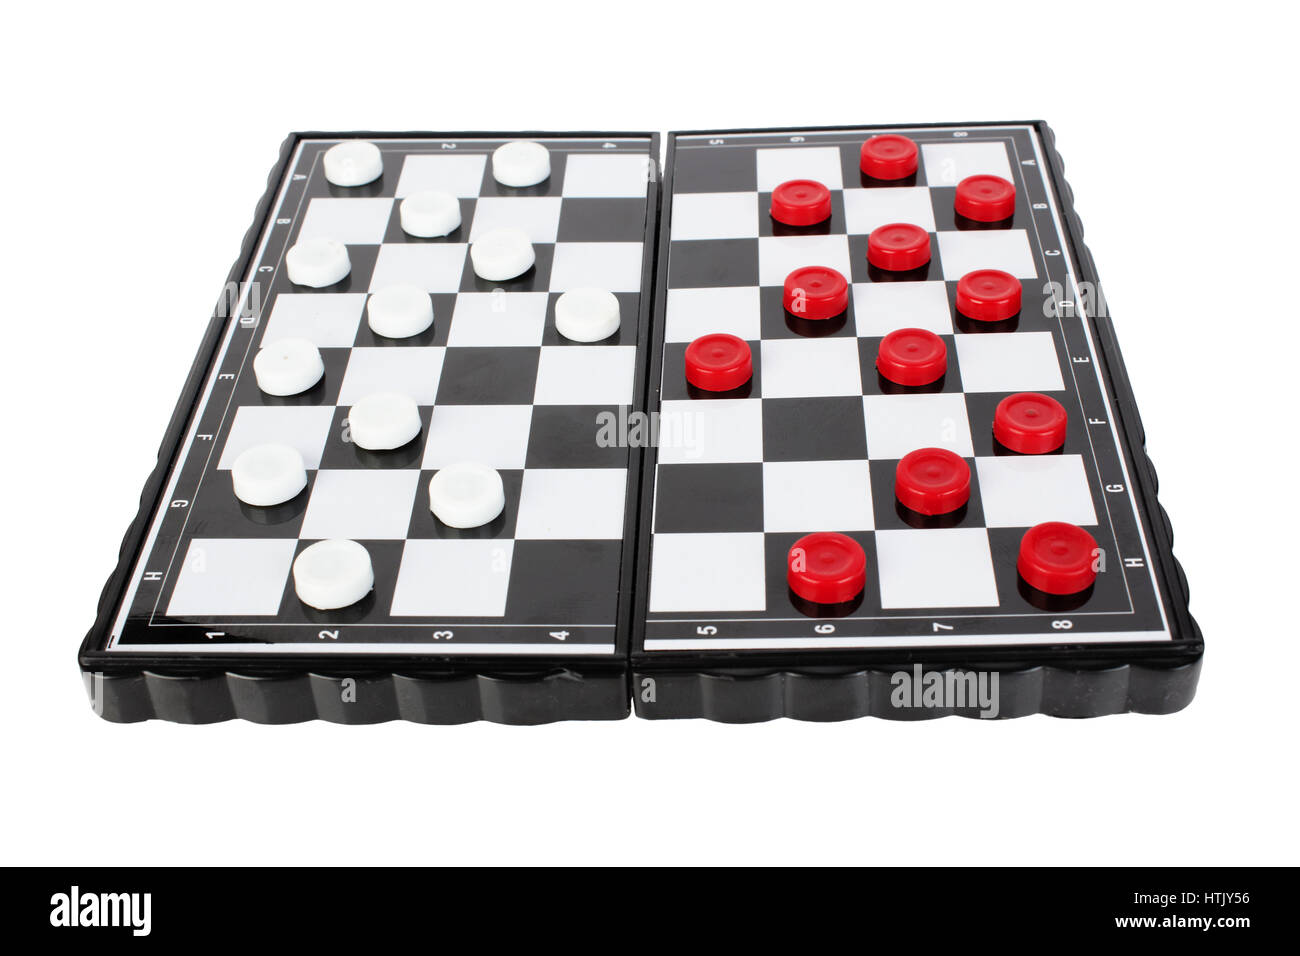 white and black checkers on a checker-board, isolated on white Stock Photo